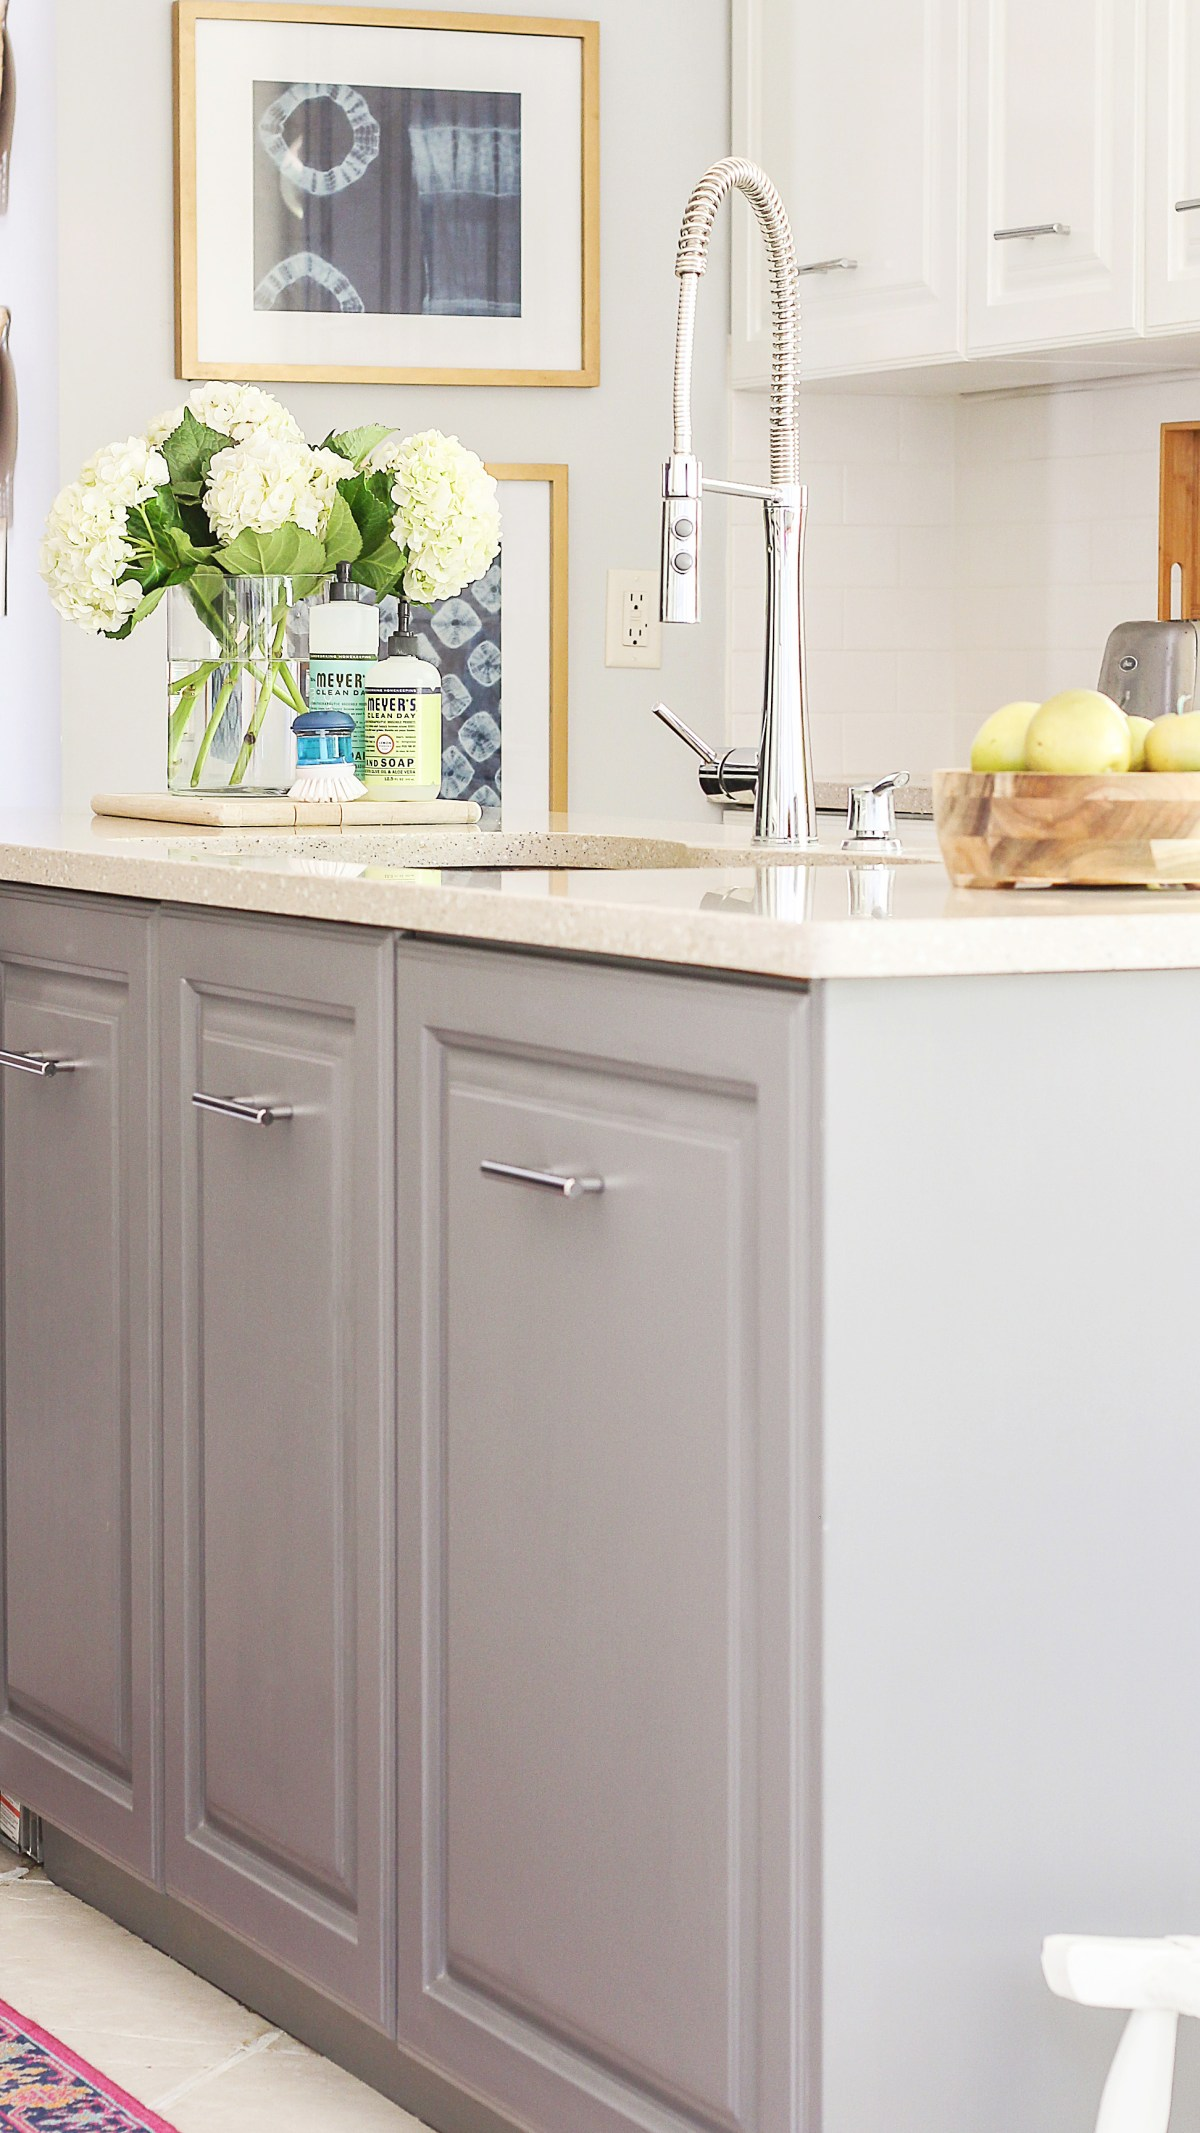 painting your kitchen cabinets white a review of my milk paint cabinets 6 month follow up 24565